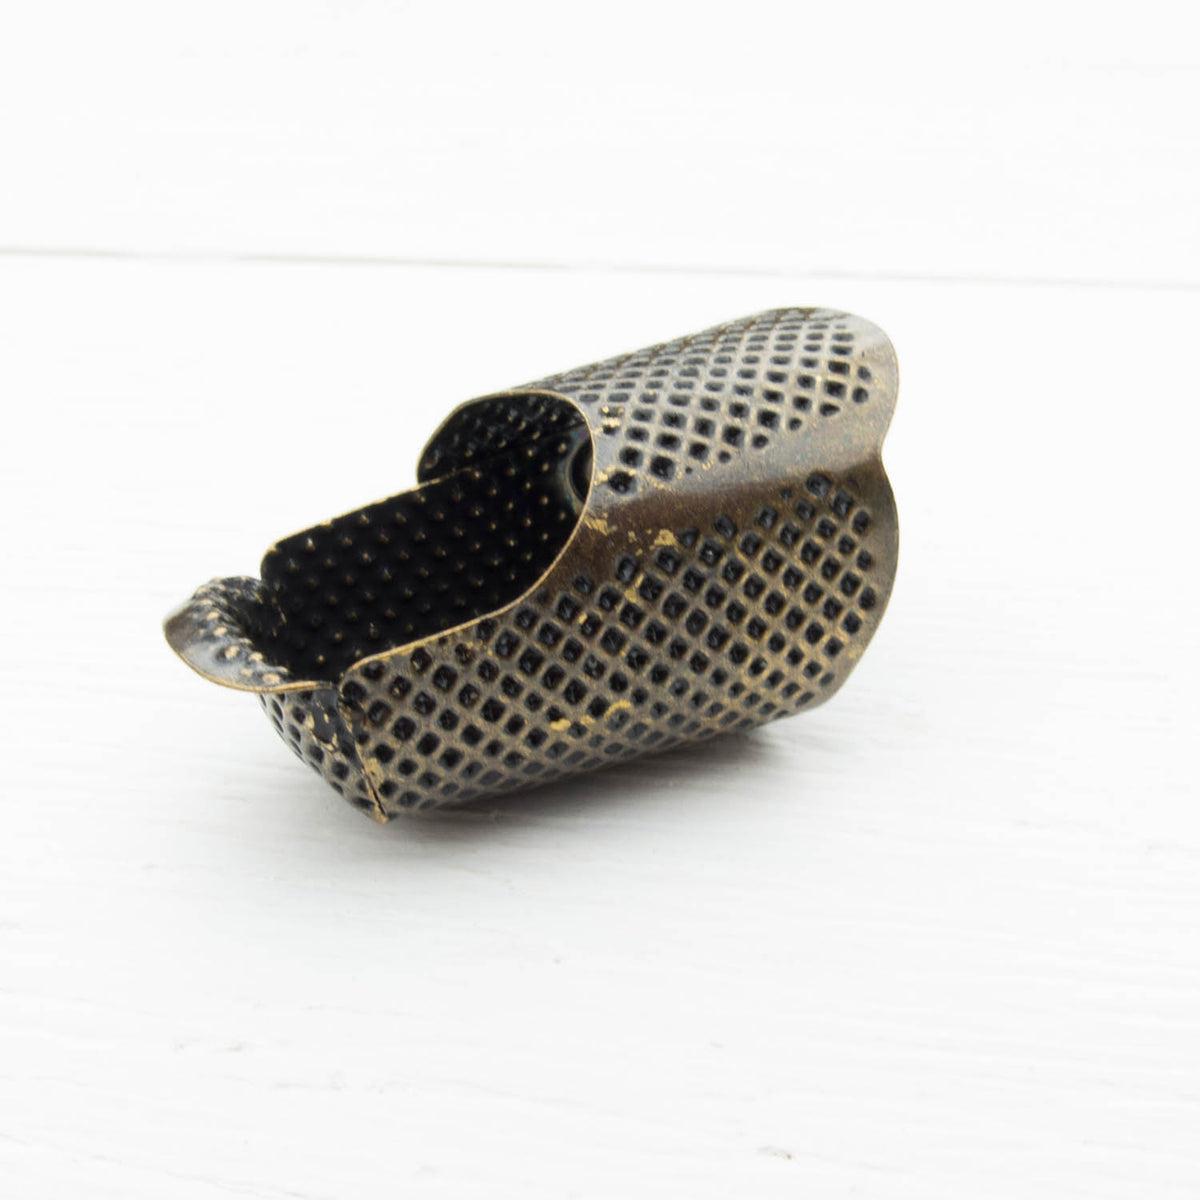 Little House Tortoise Shell Metal Thimble Thimble - Snuggly Monkey